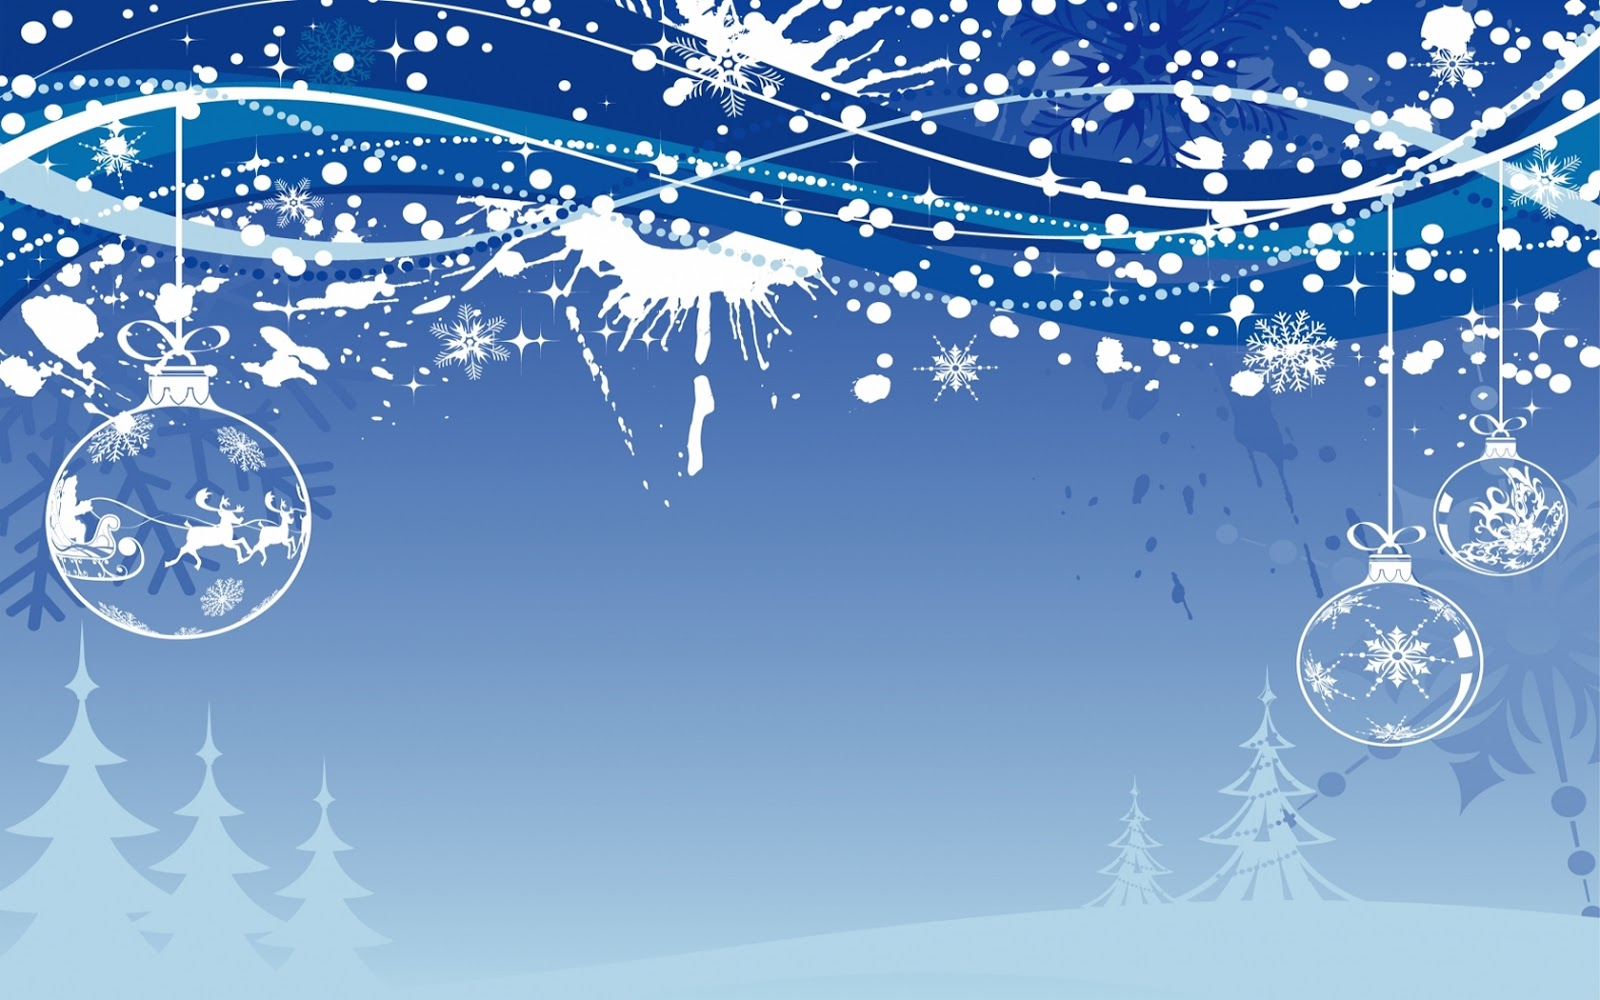 Moving clipart snowflake #15